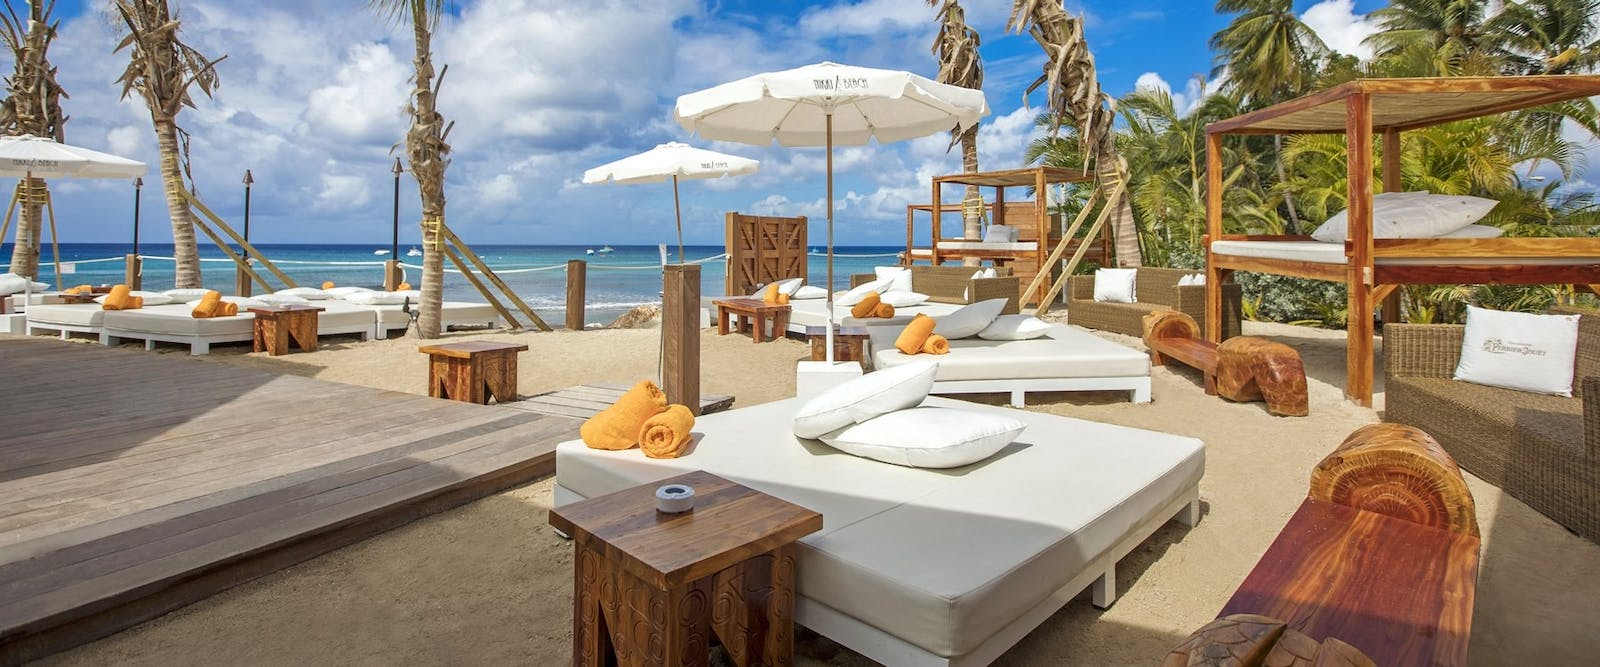 Sun Loungers at Nikki Beach at Port Ferdinand Marina & Luxury Residences, Barbados